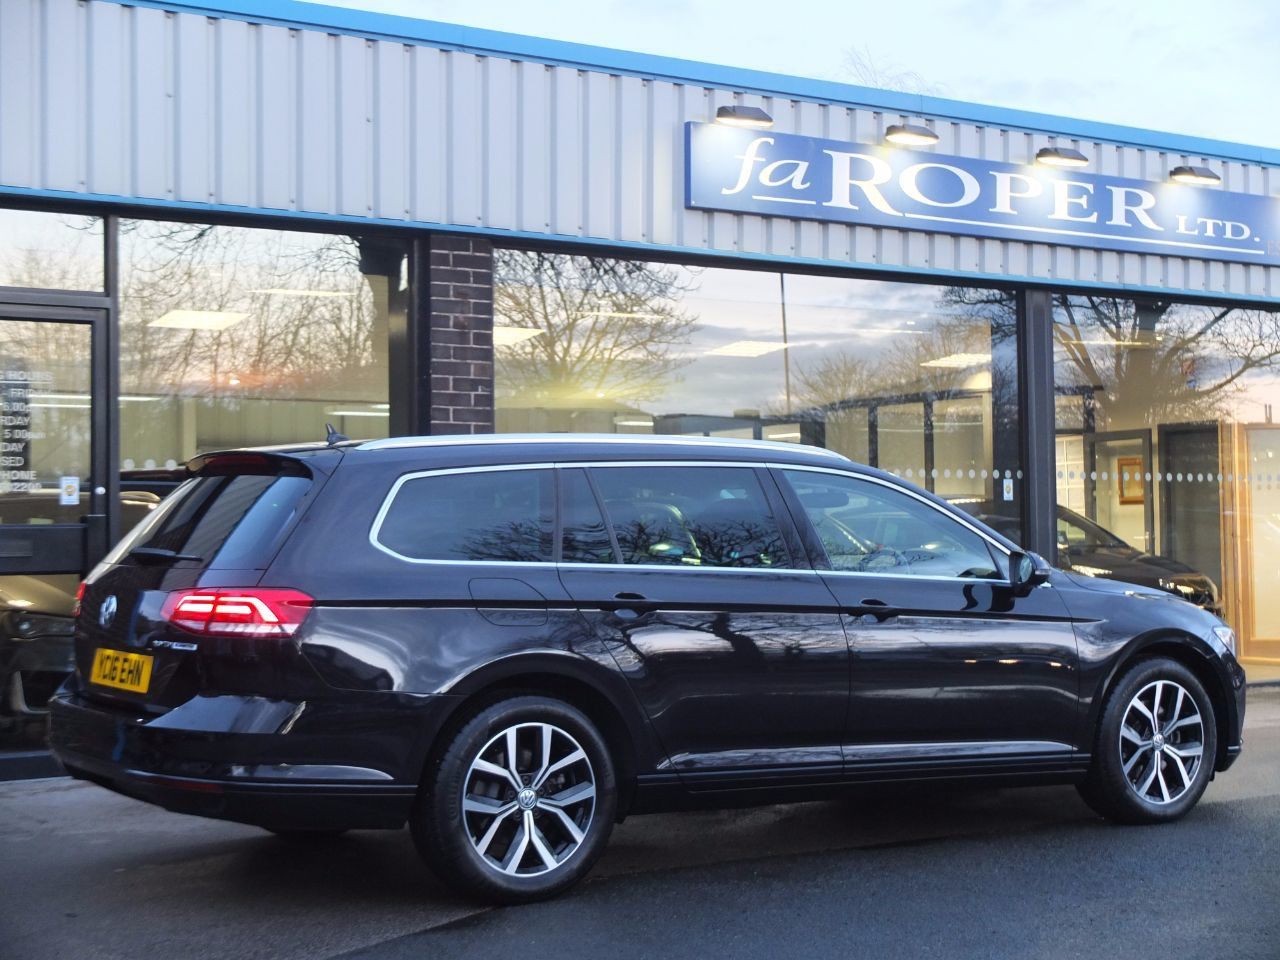 Volkswagen Passat 2.0 TDI SE Business Estate DSG Estate Diesel Deep Black Metallic